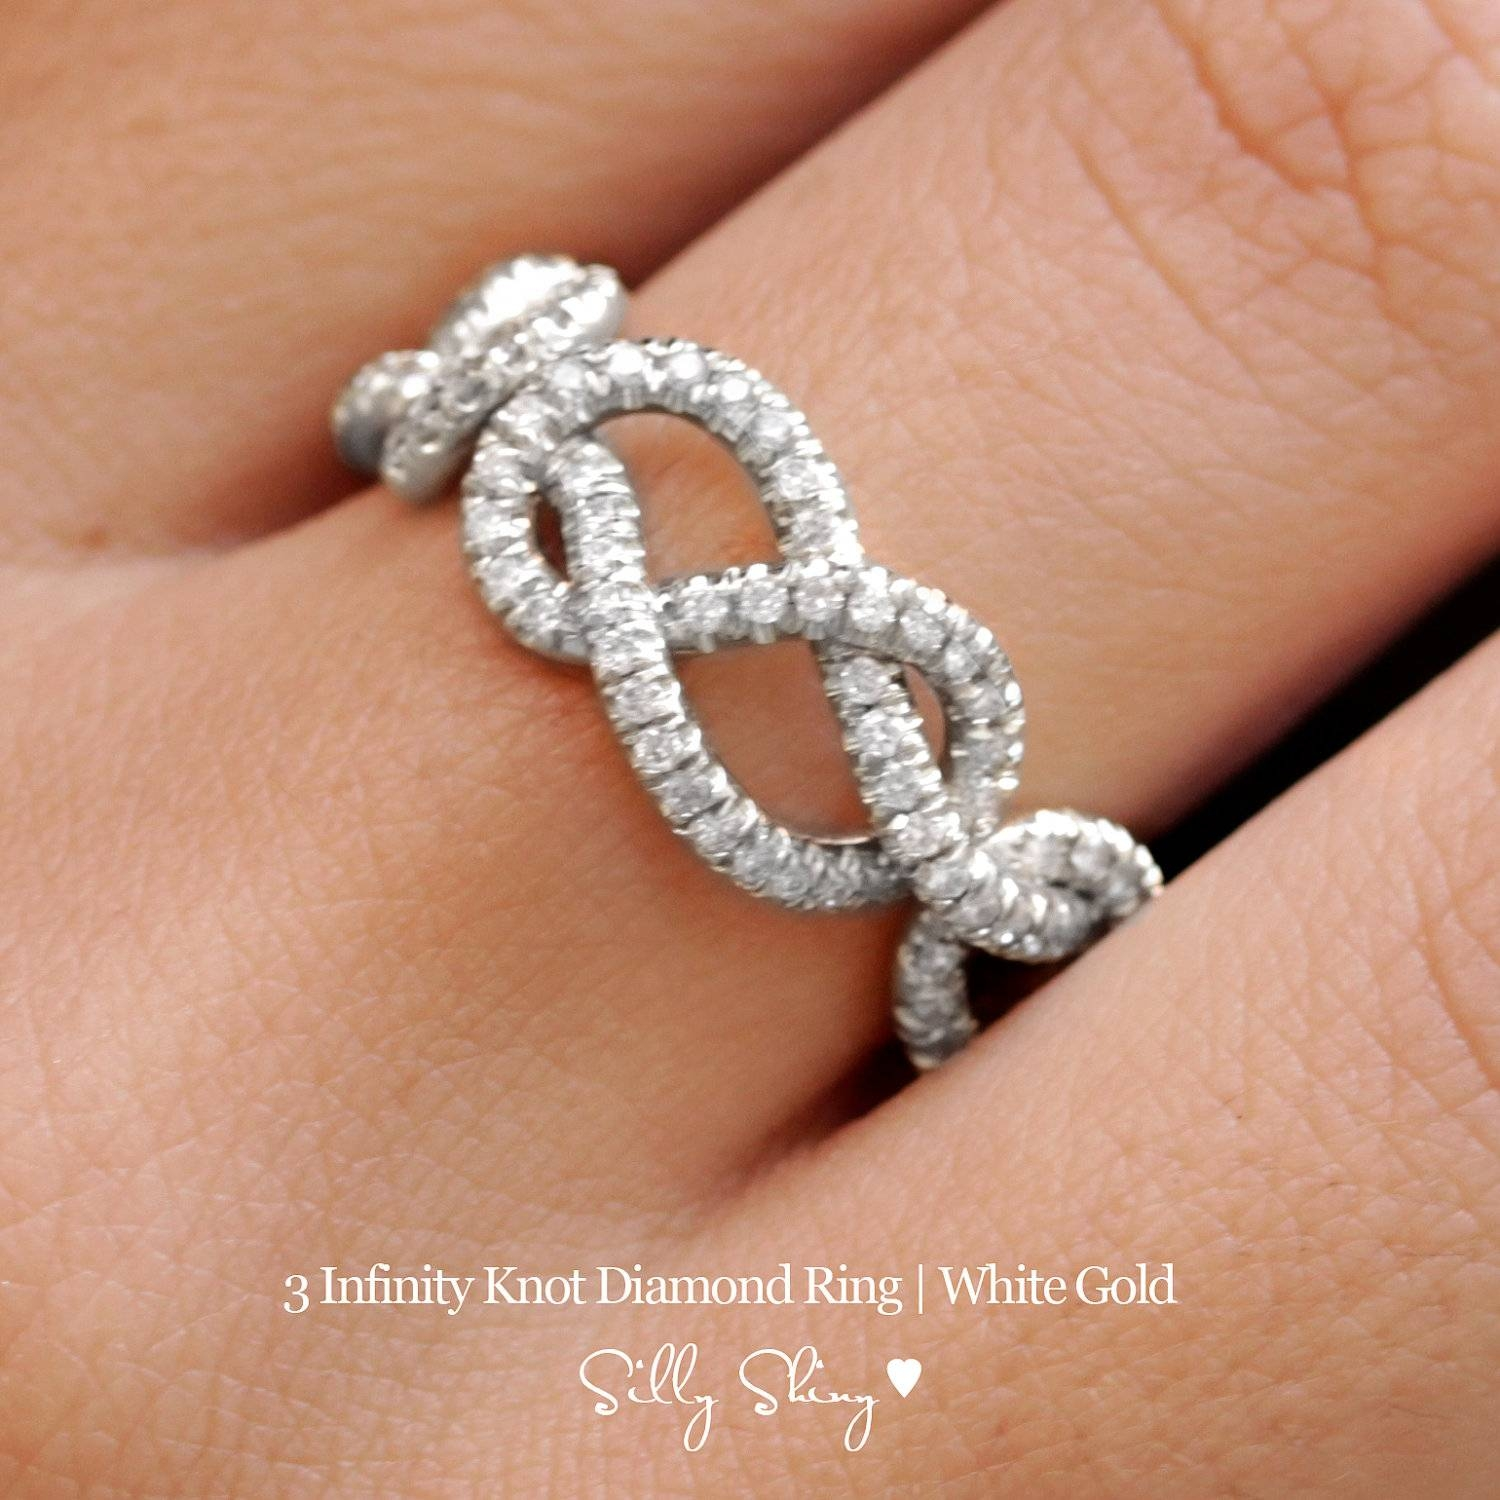 Jordan Diamond Rings | Wedding, Promise, Diamond, Engagement Rings Throughout Infinity Knot Engagement Rings (Gallery 13 of 15)